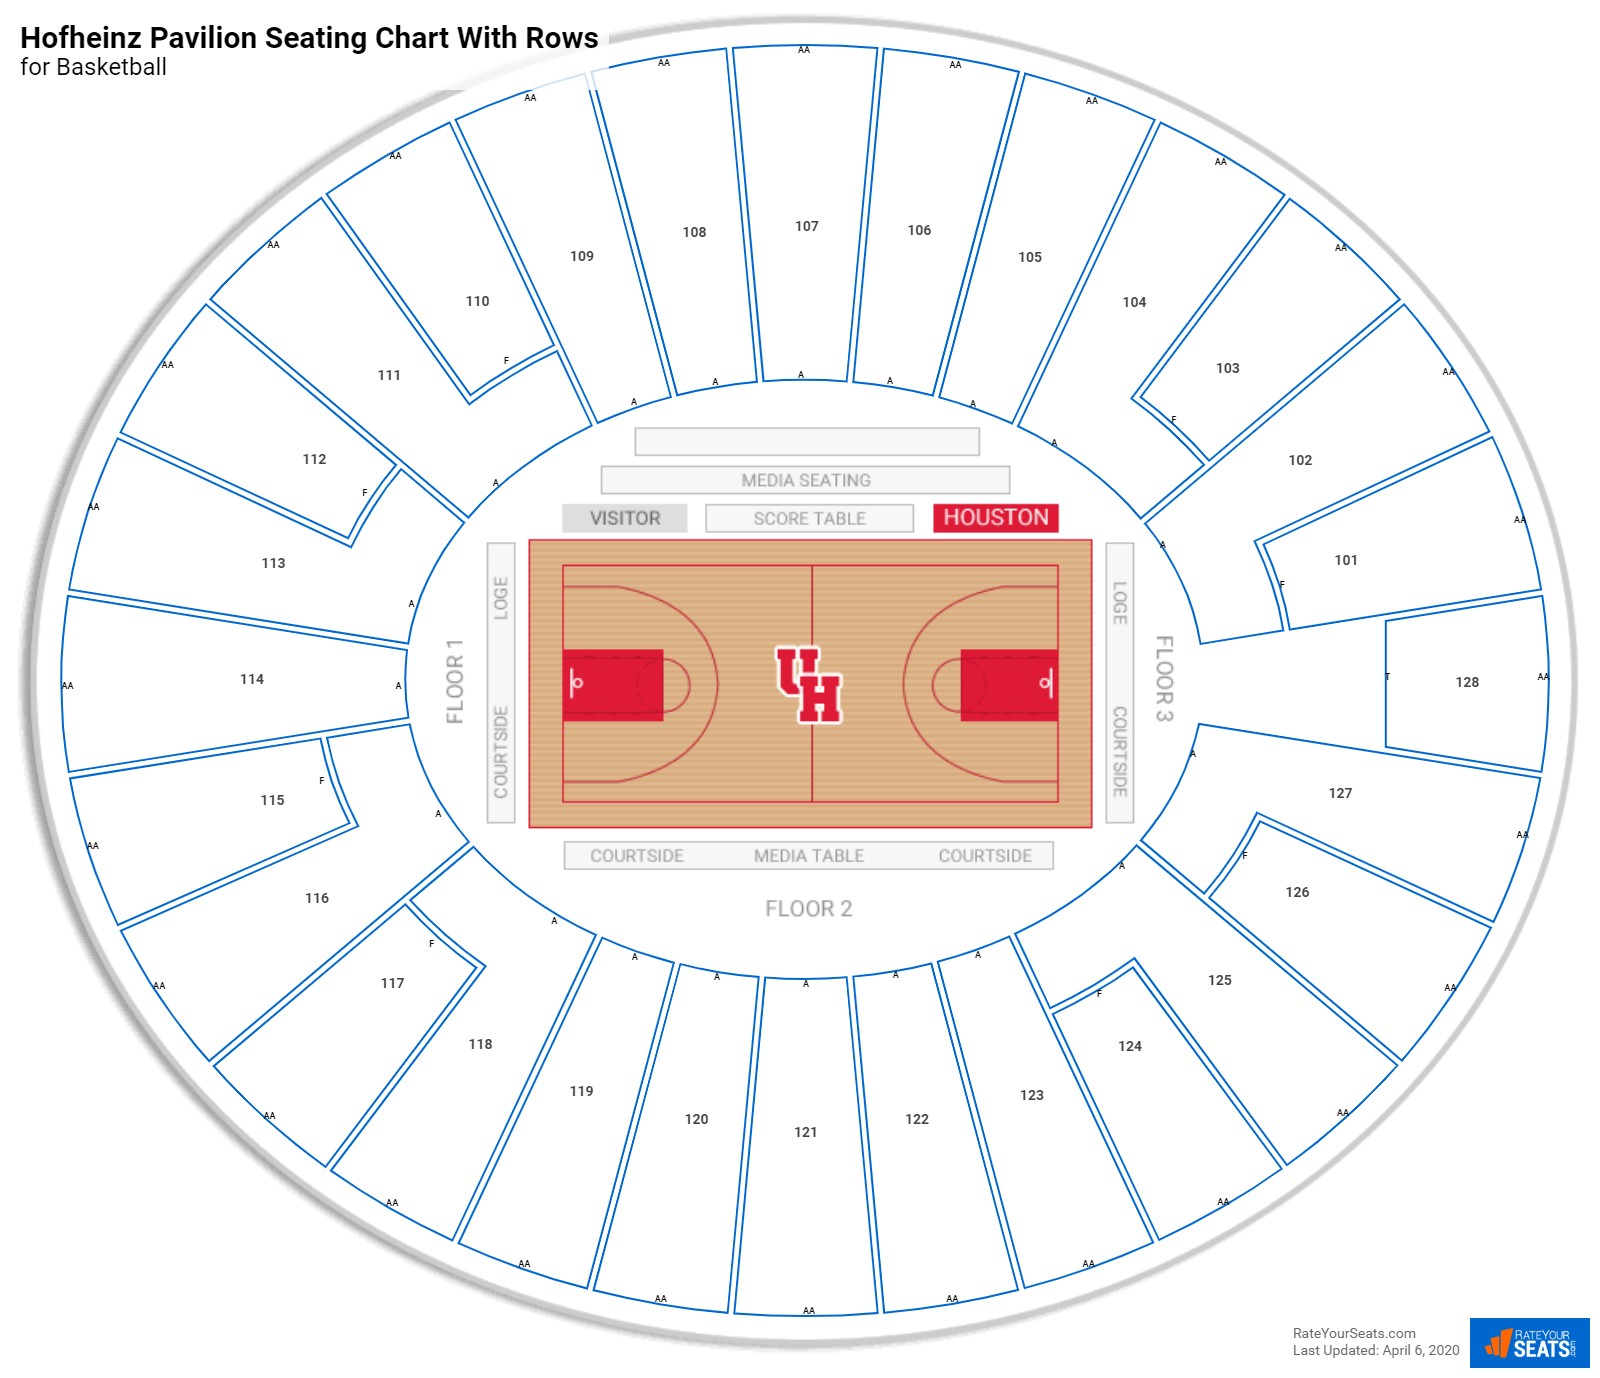 Hofheinz Pavilion seating chart with rows